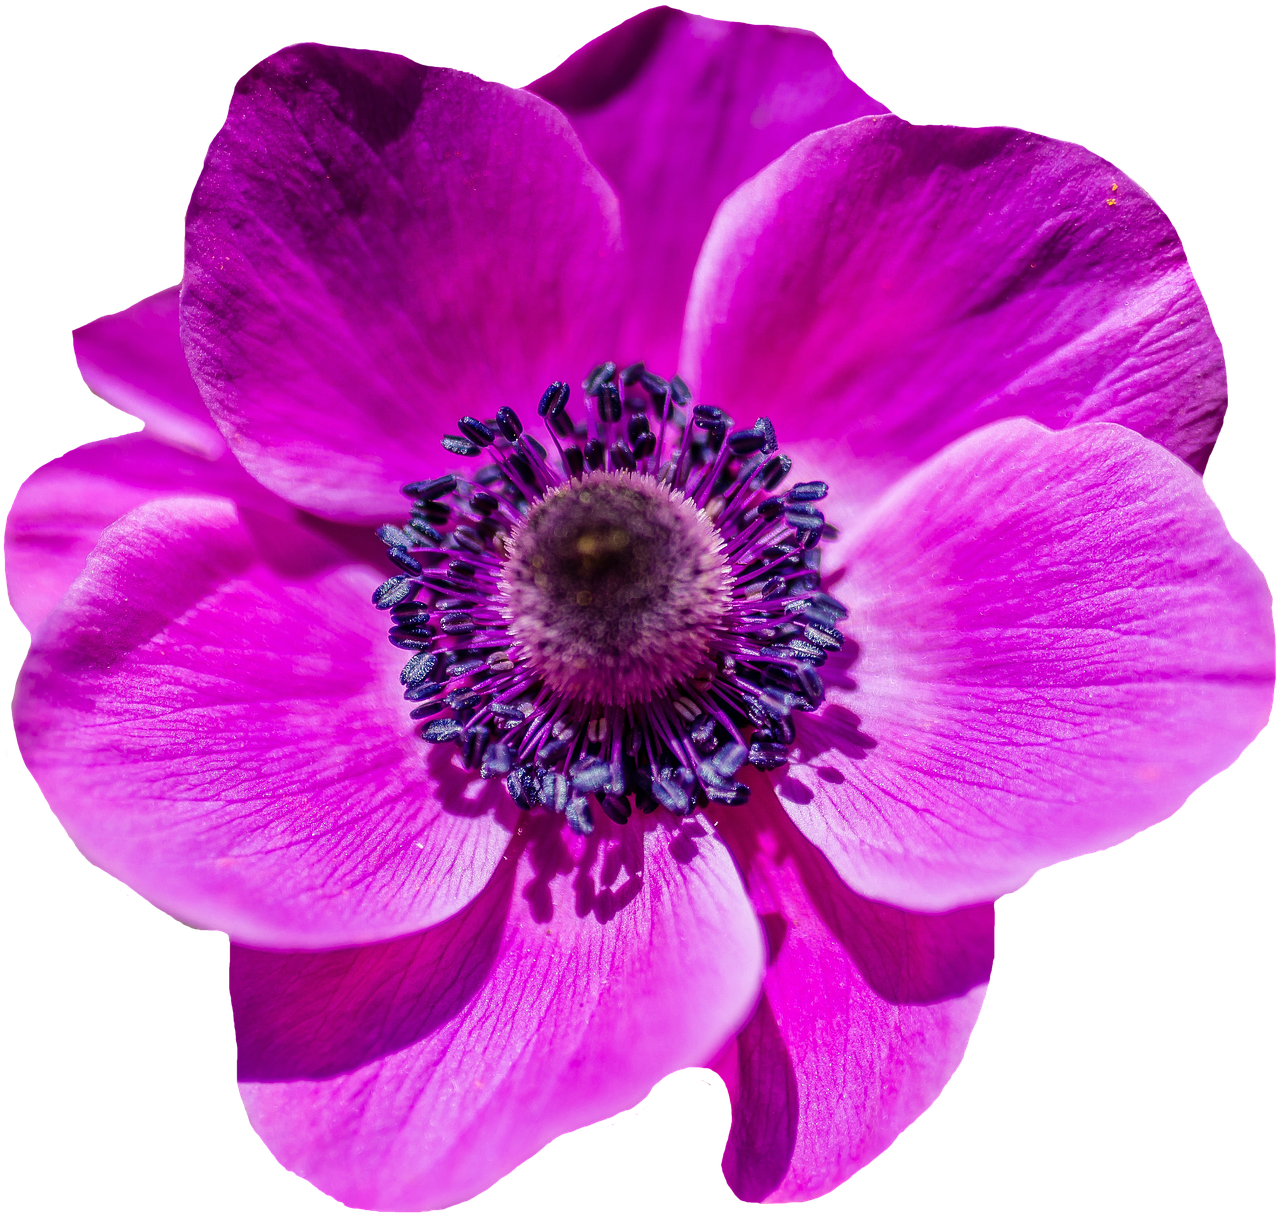 Poppy Flower Blossom Bloom Purple Flower Flower Png Images Poppy Flower Anemone Flower